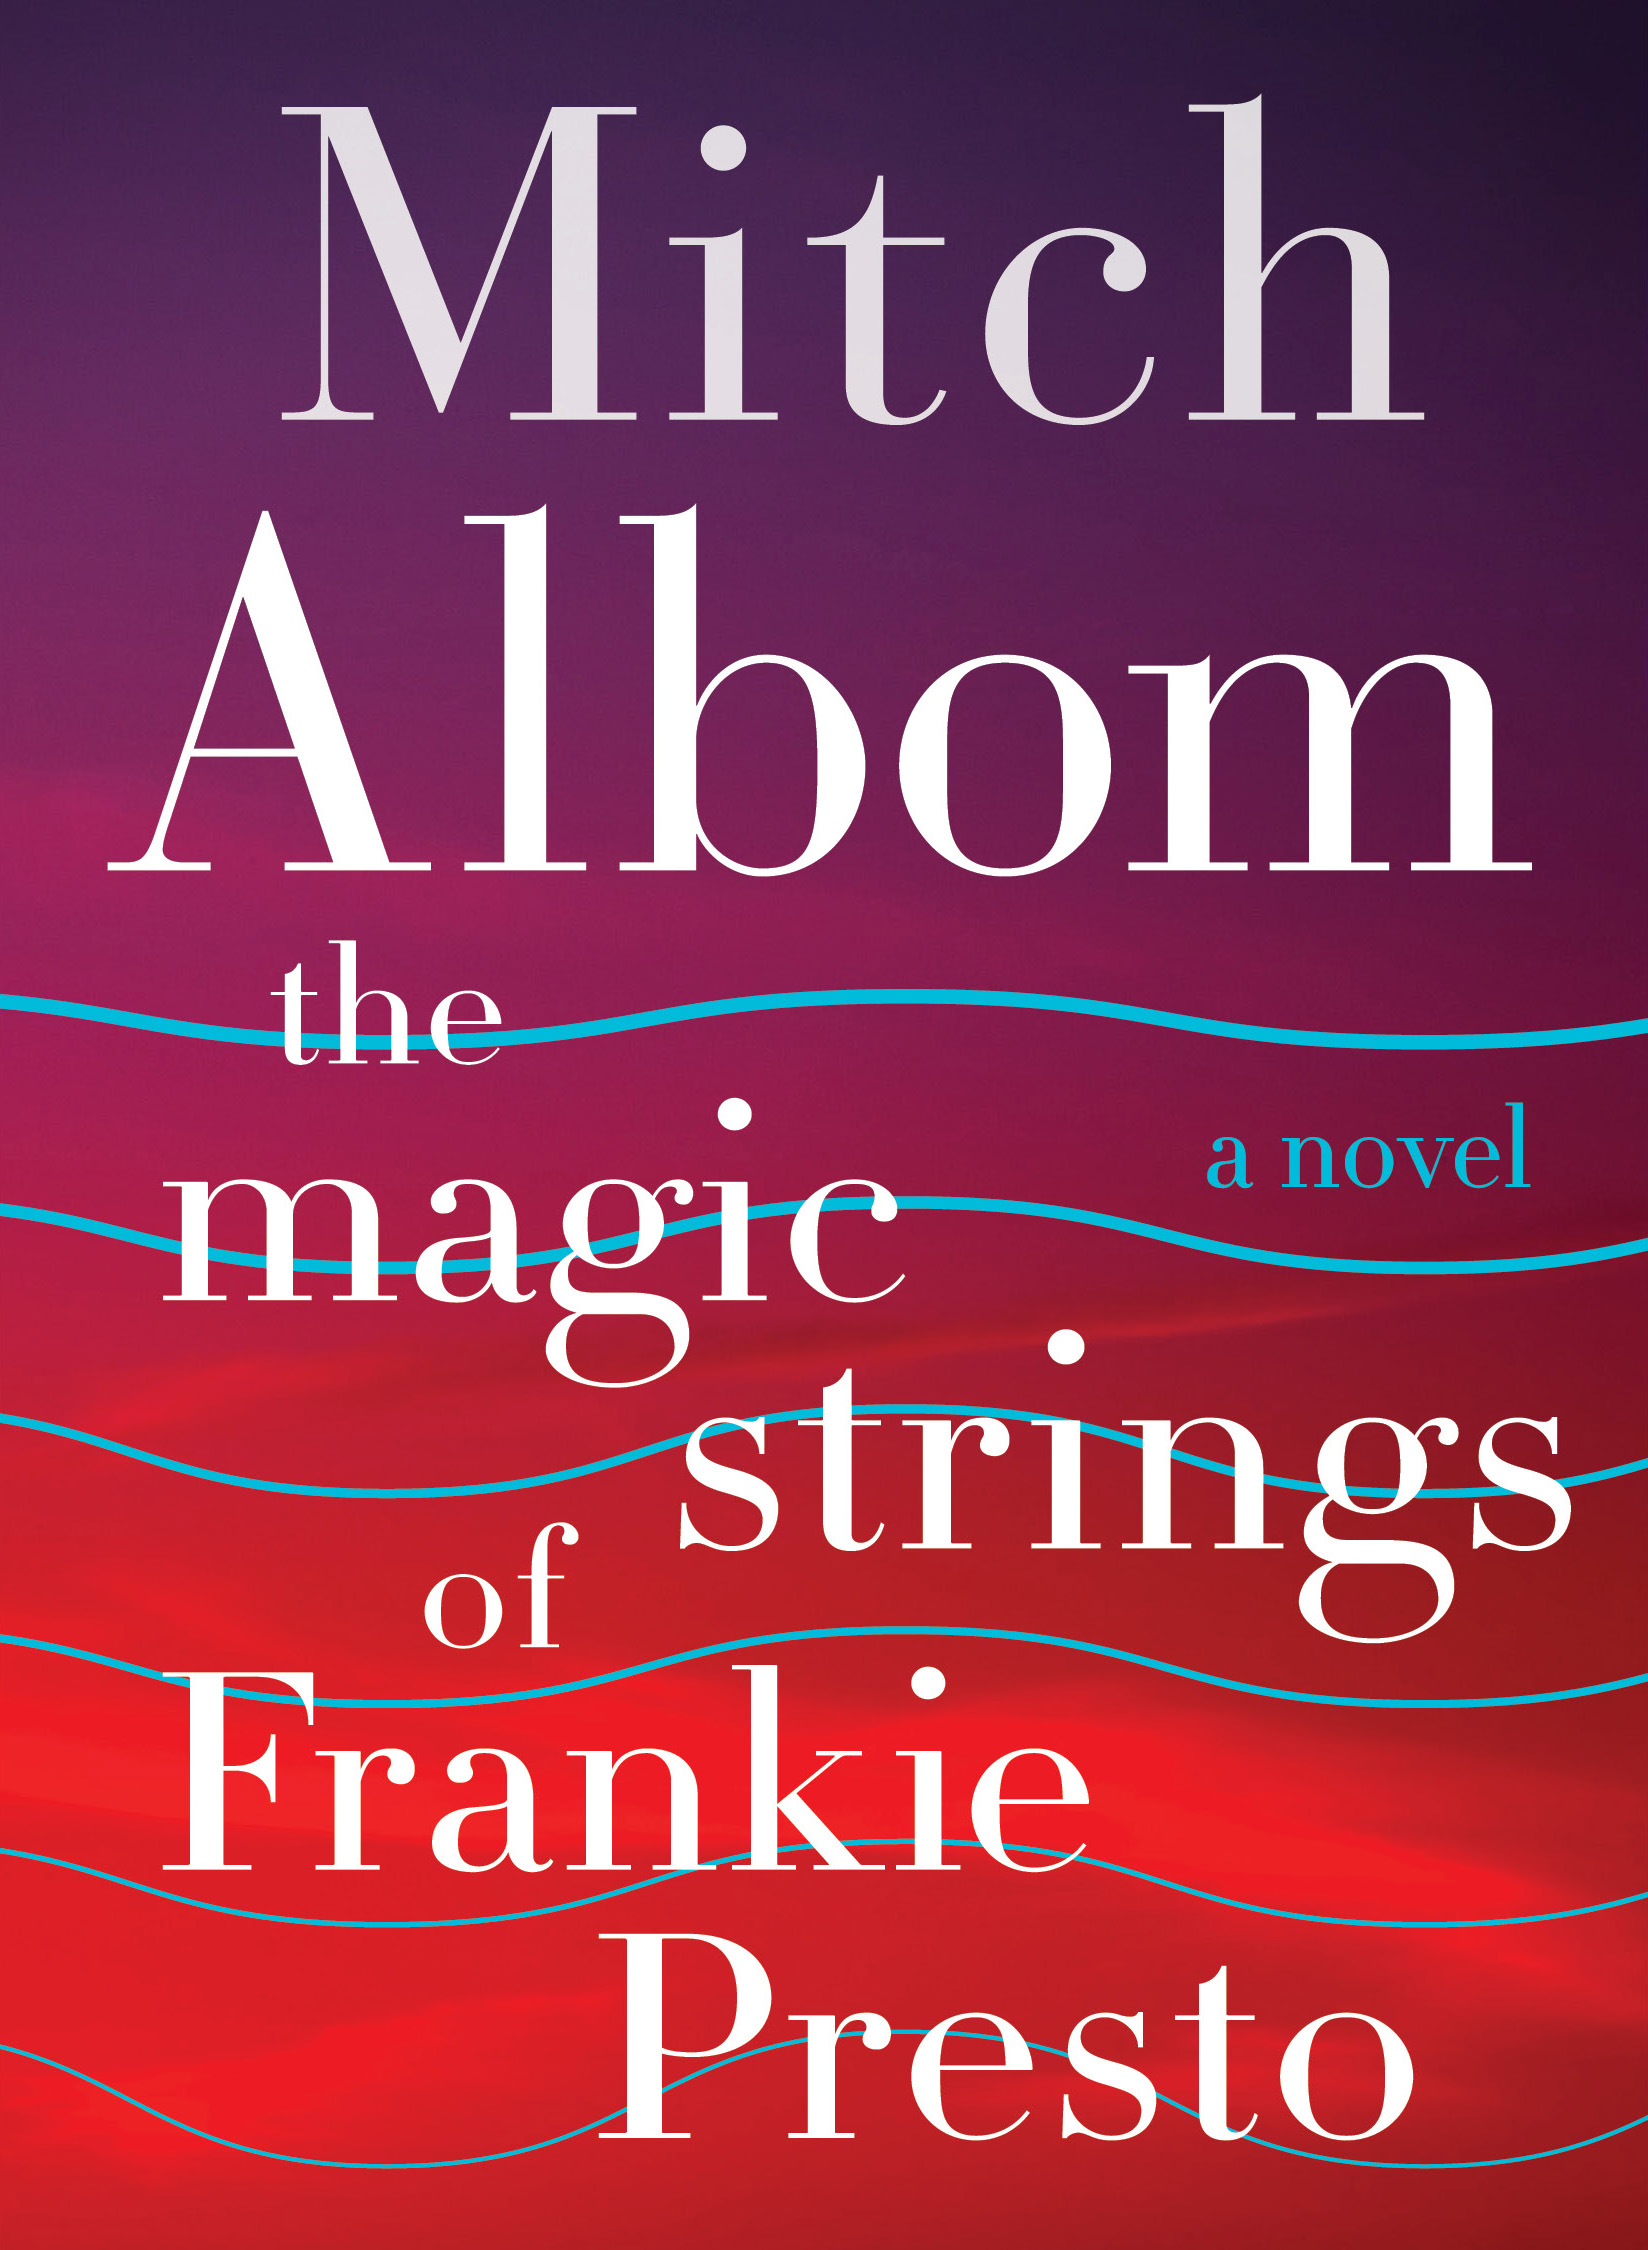 mitch albom new novel the magic strings of frankie presto